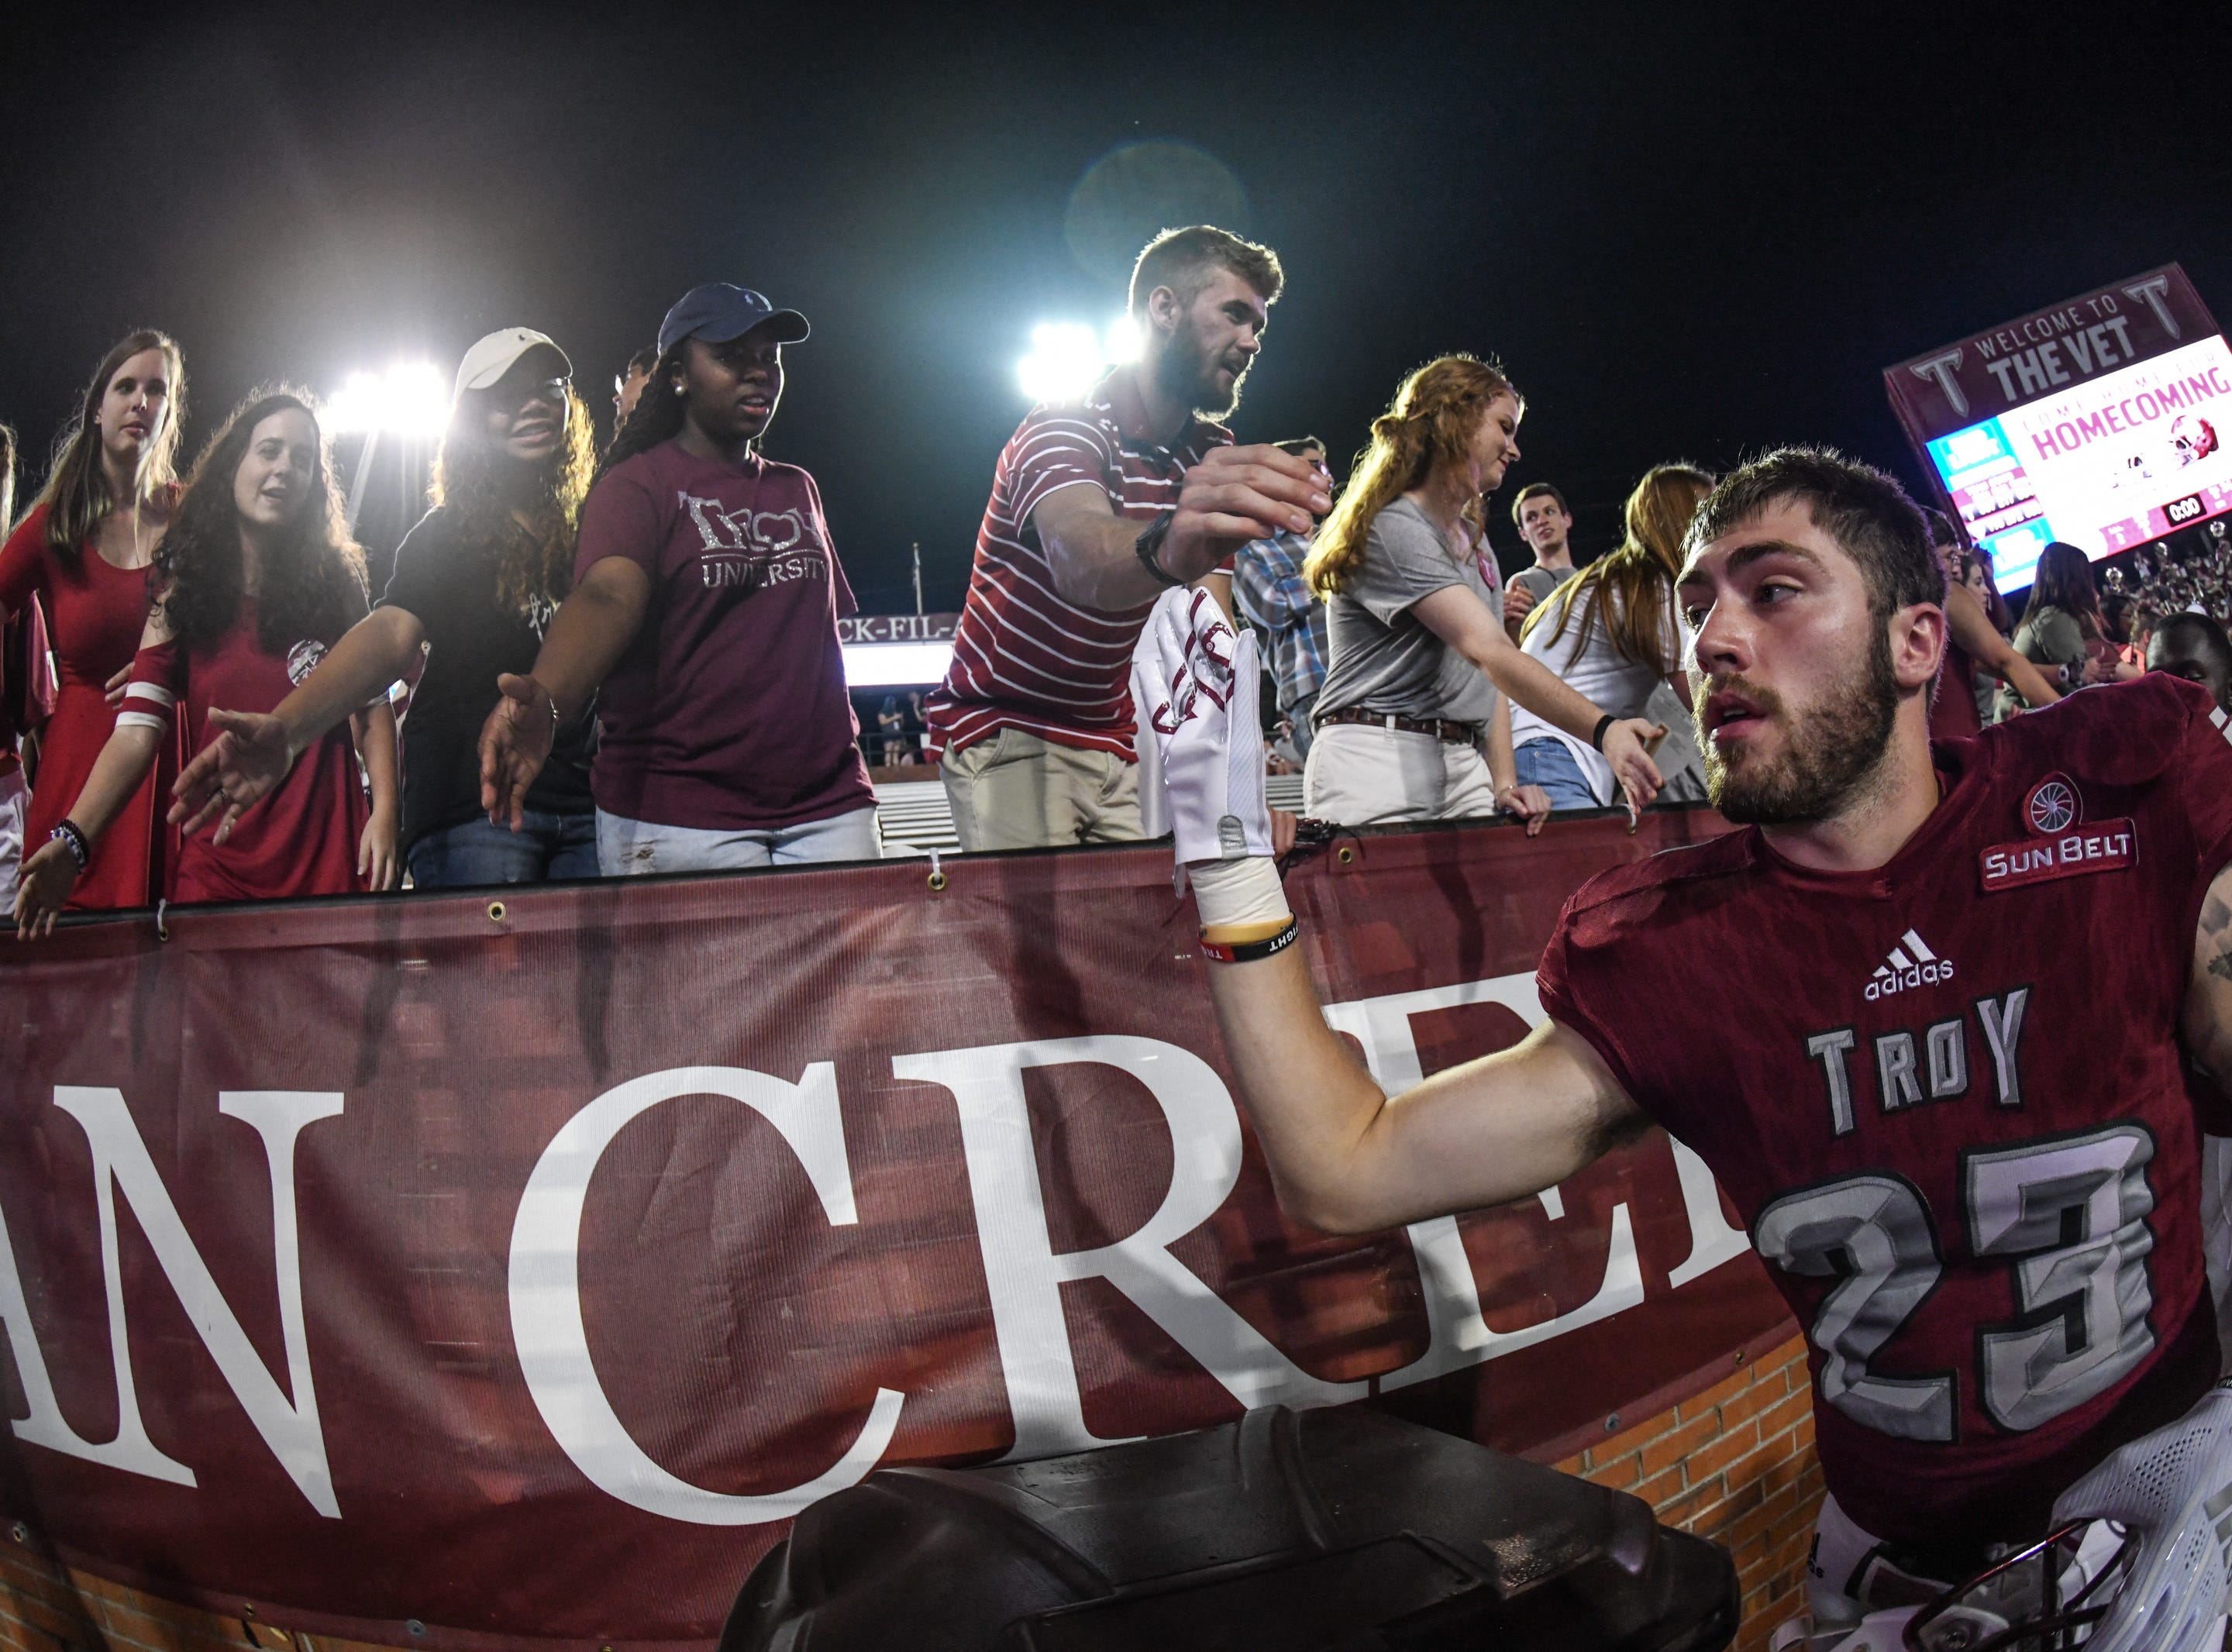 Troy Trojans wide receiver Bret Clark (23) celebrates with the Troy student section against Georgia State at Veteran's Memorial Stadium in Troy, Ala., on Thursday, Oct. 4, 2018. (Chip Dillard/Special to the Montgomery Advertiser)